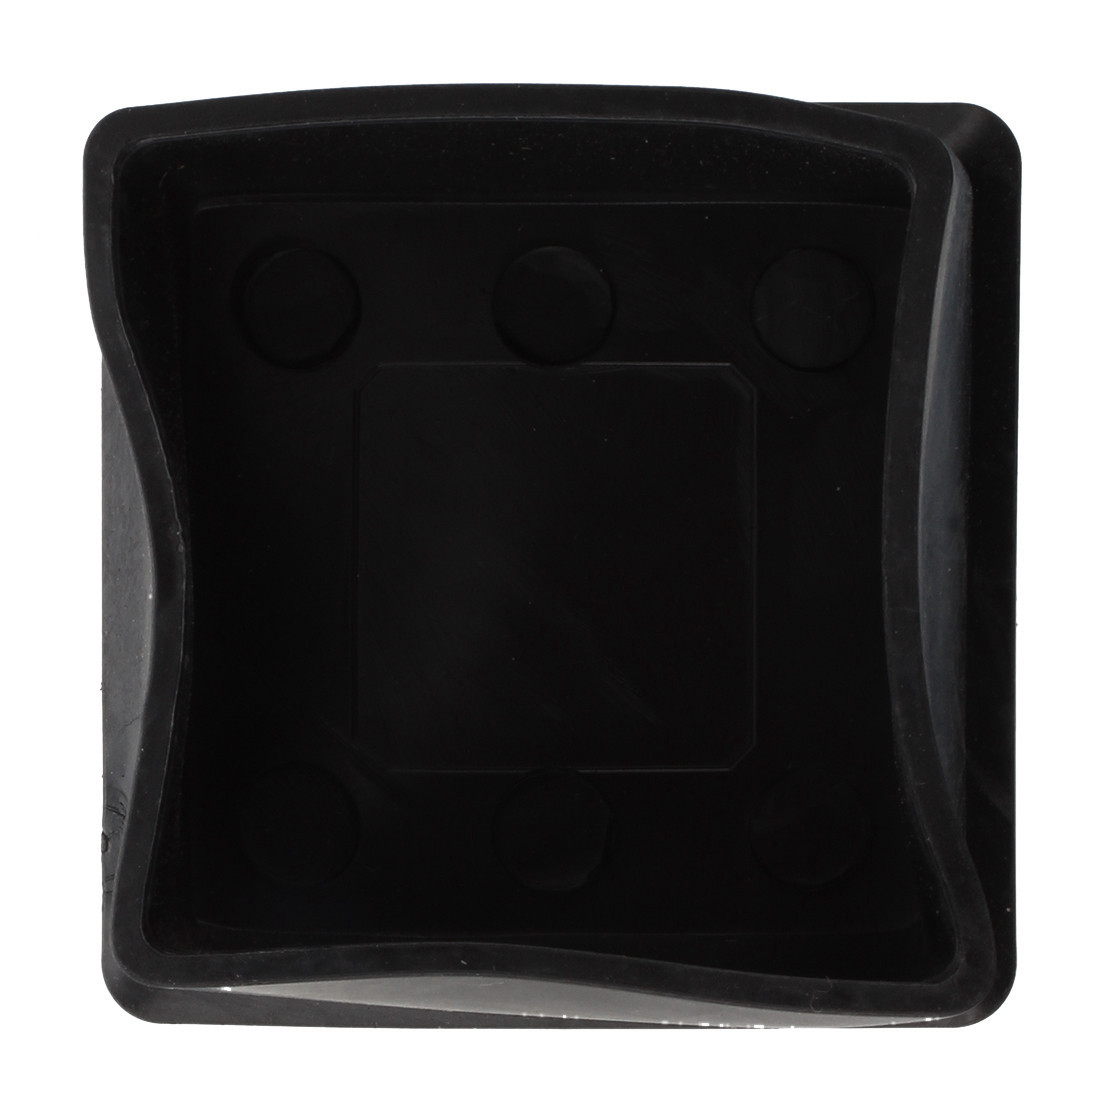 Square Black Rubber 50mmx50mm Foot for Table Chair Leg